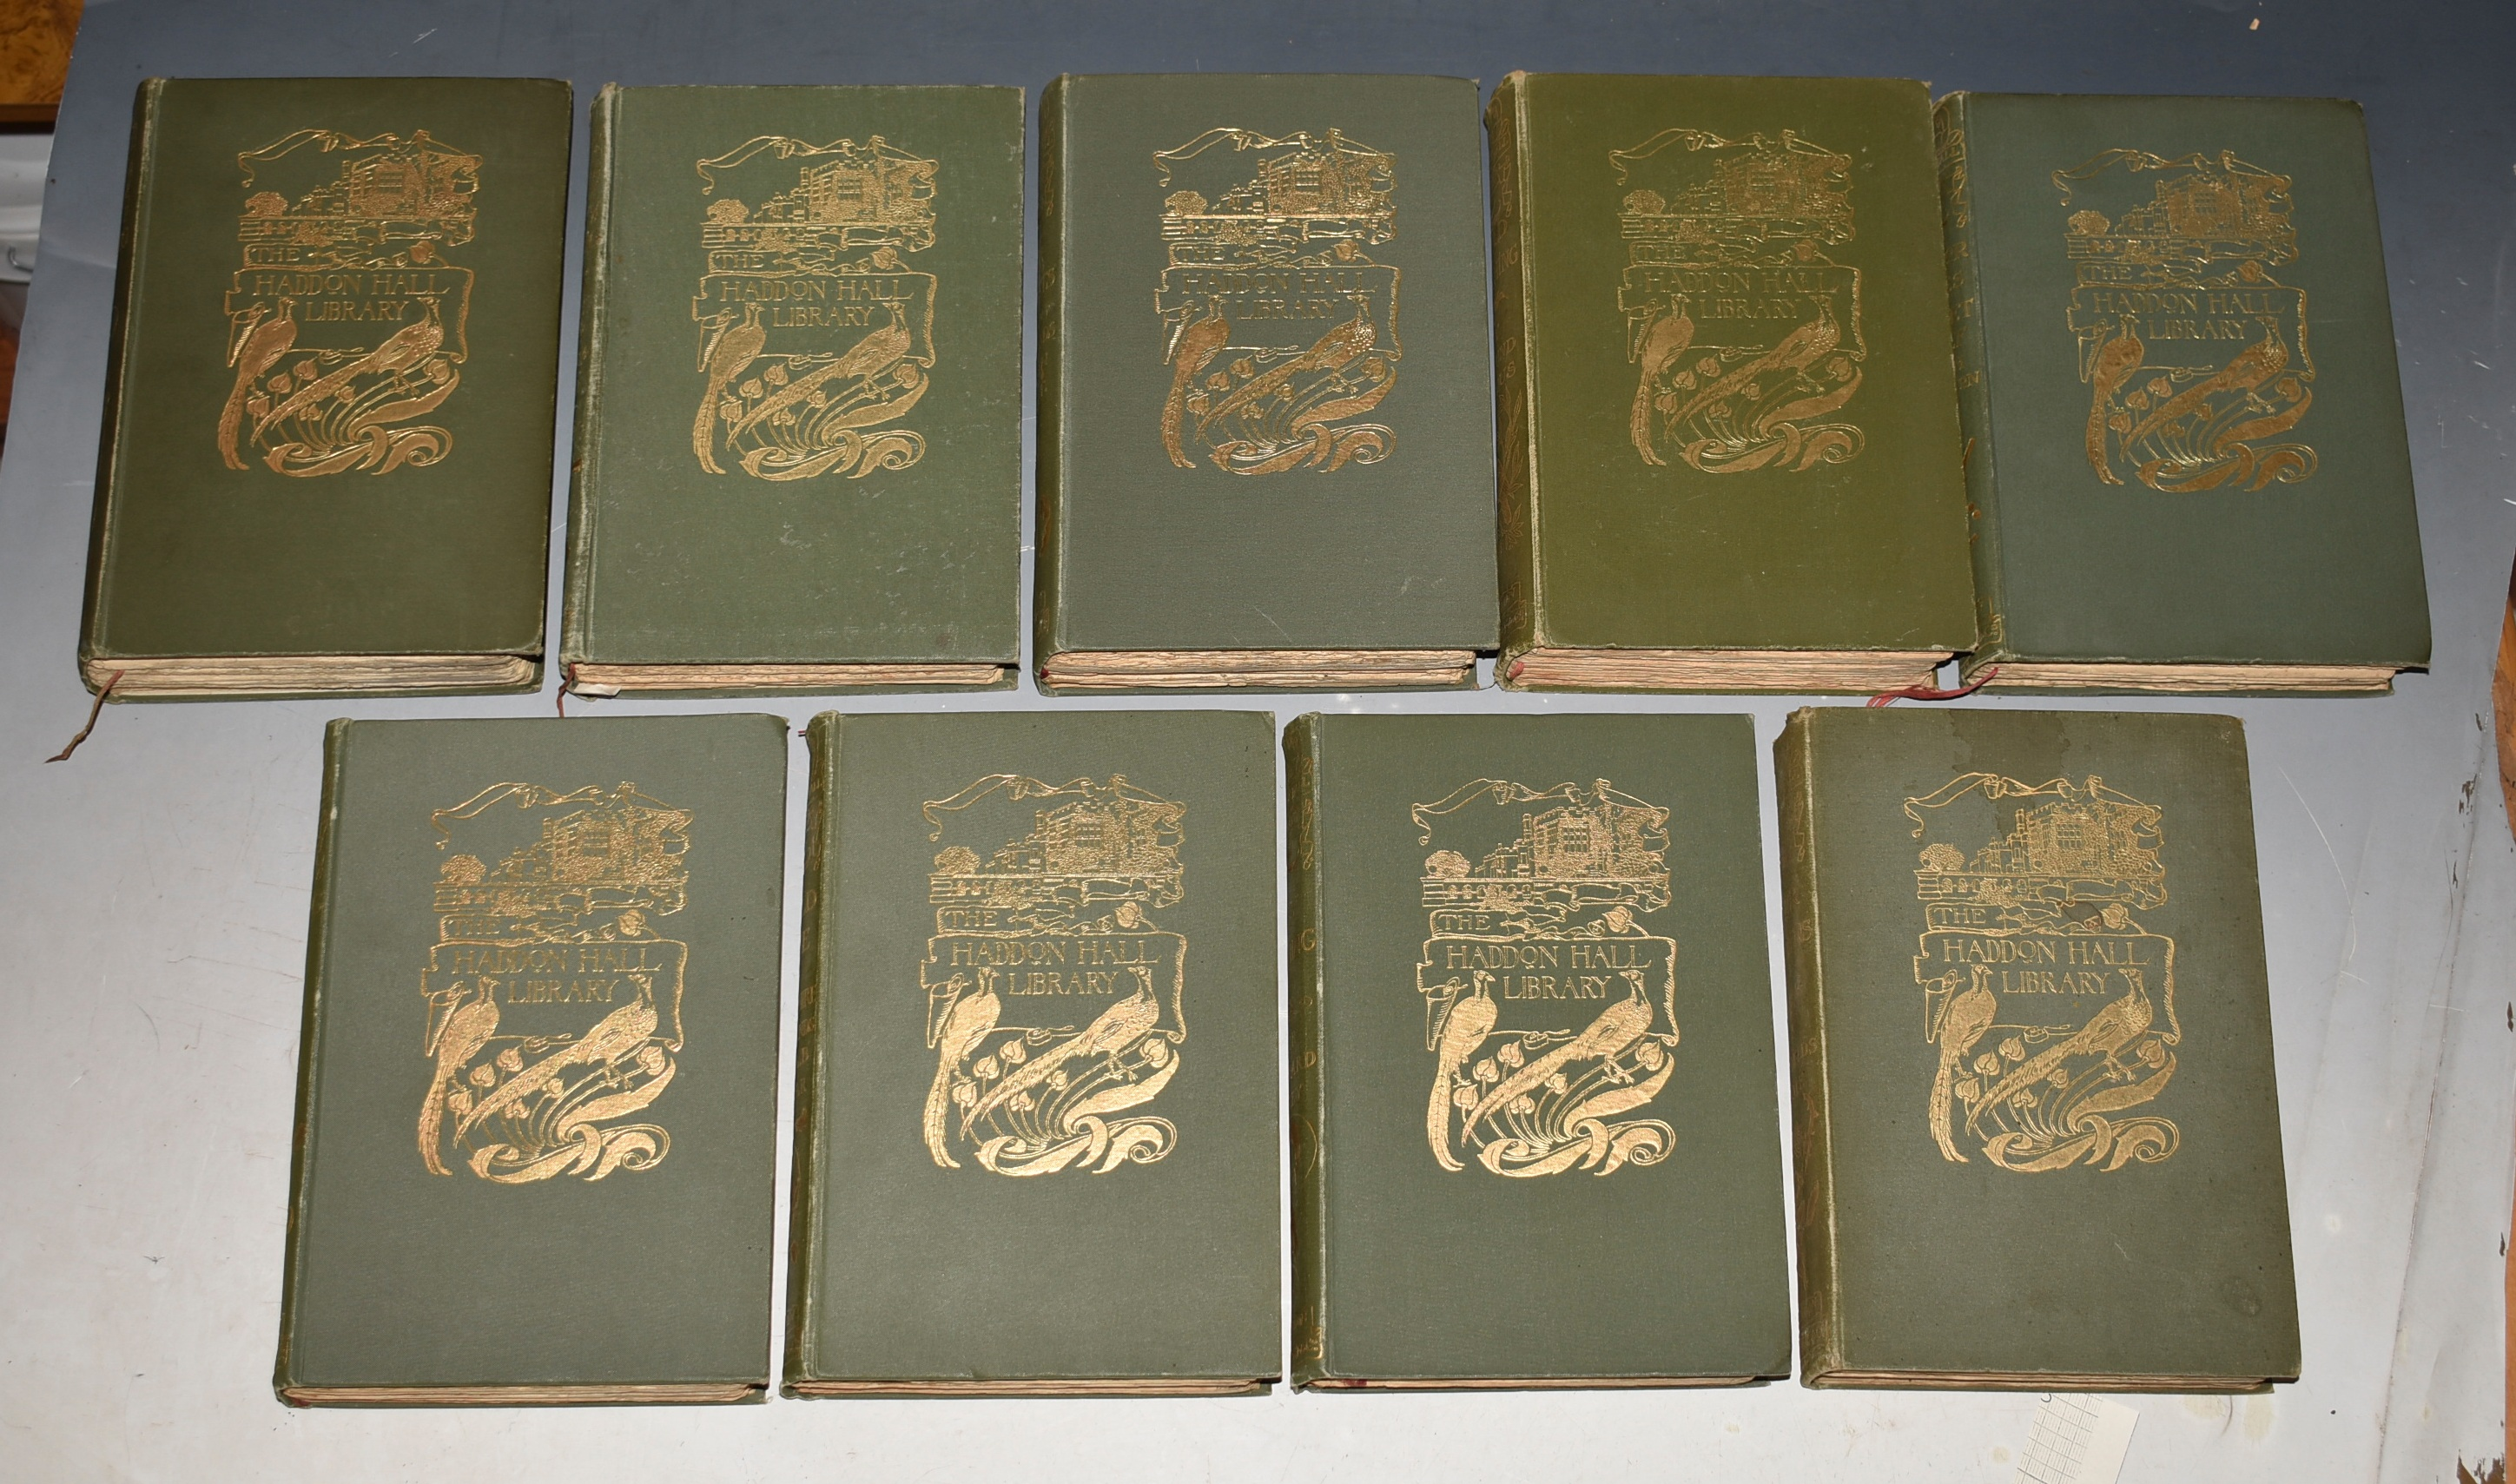 Image for A complete set of The Haddon Hall Library.] Comprising: Fly Fishing; Wildlife in Hampshire Higlands; Our Gardens; Our Forests and Woodlands; Hunting; Outdoor Games (Cricket & Golf); Bird Watching; Shooting; Farming. The Haddon Hall Library.